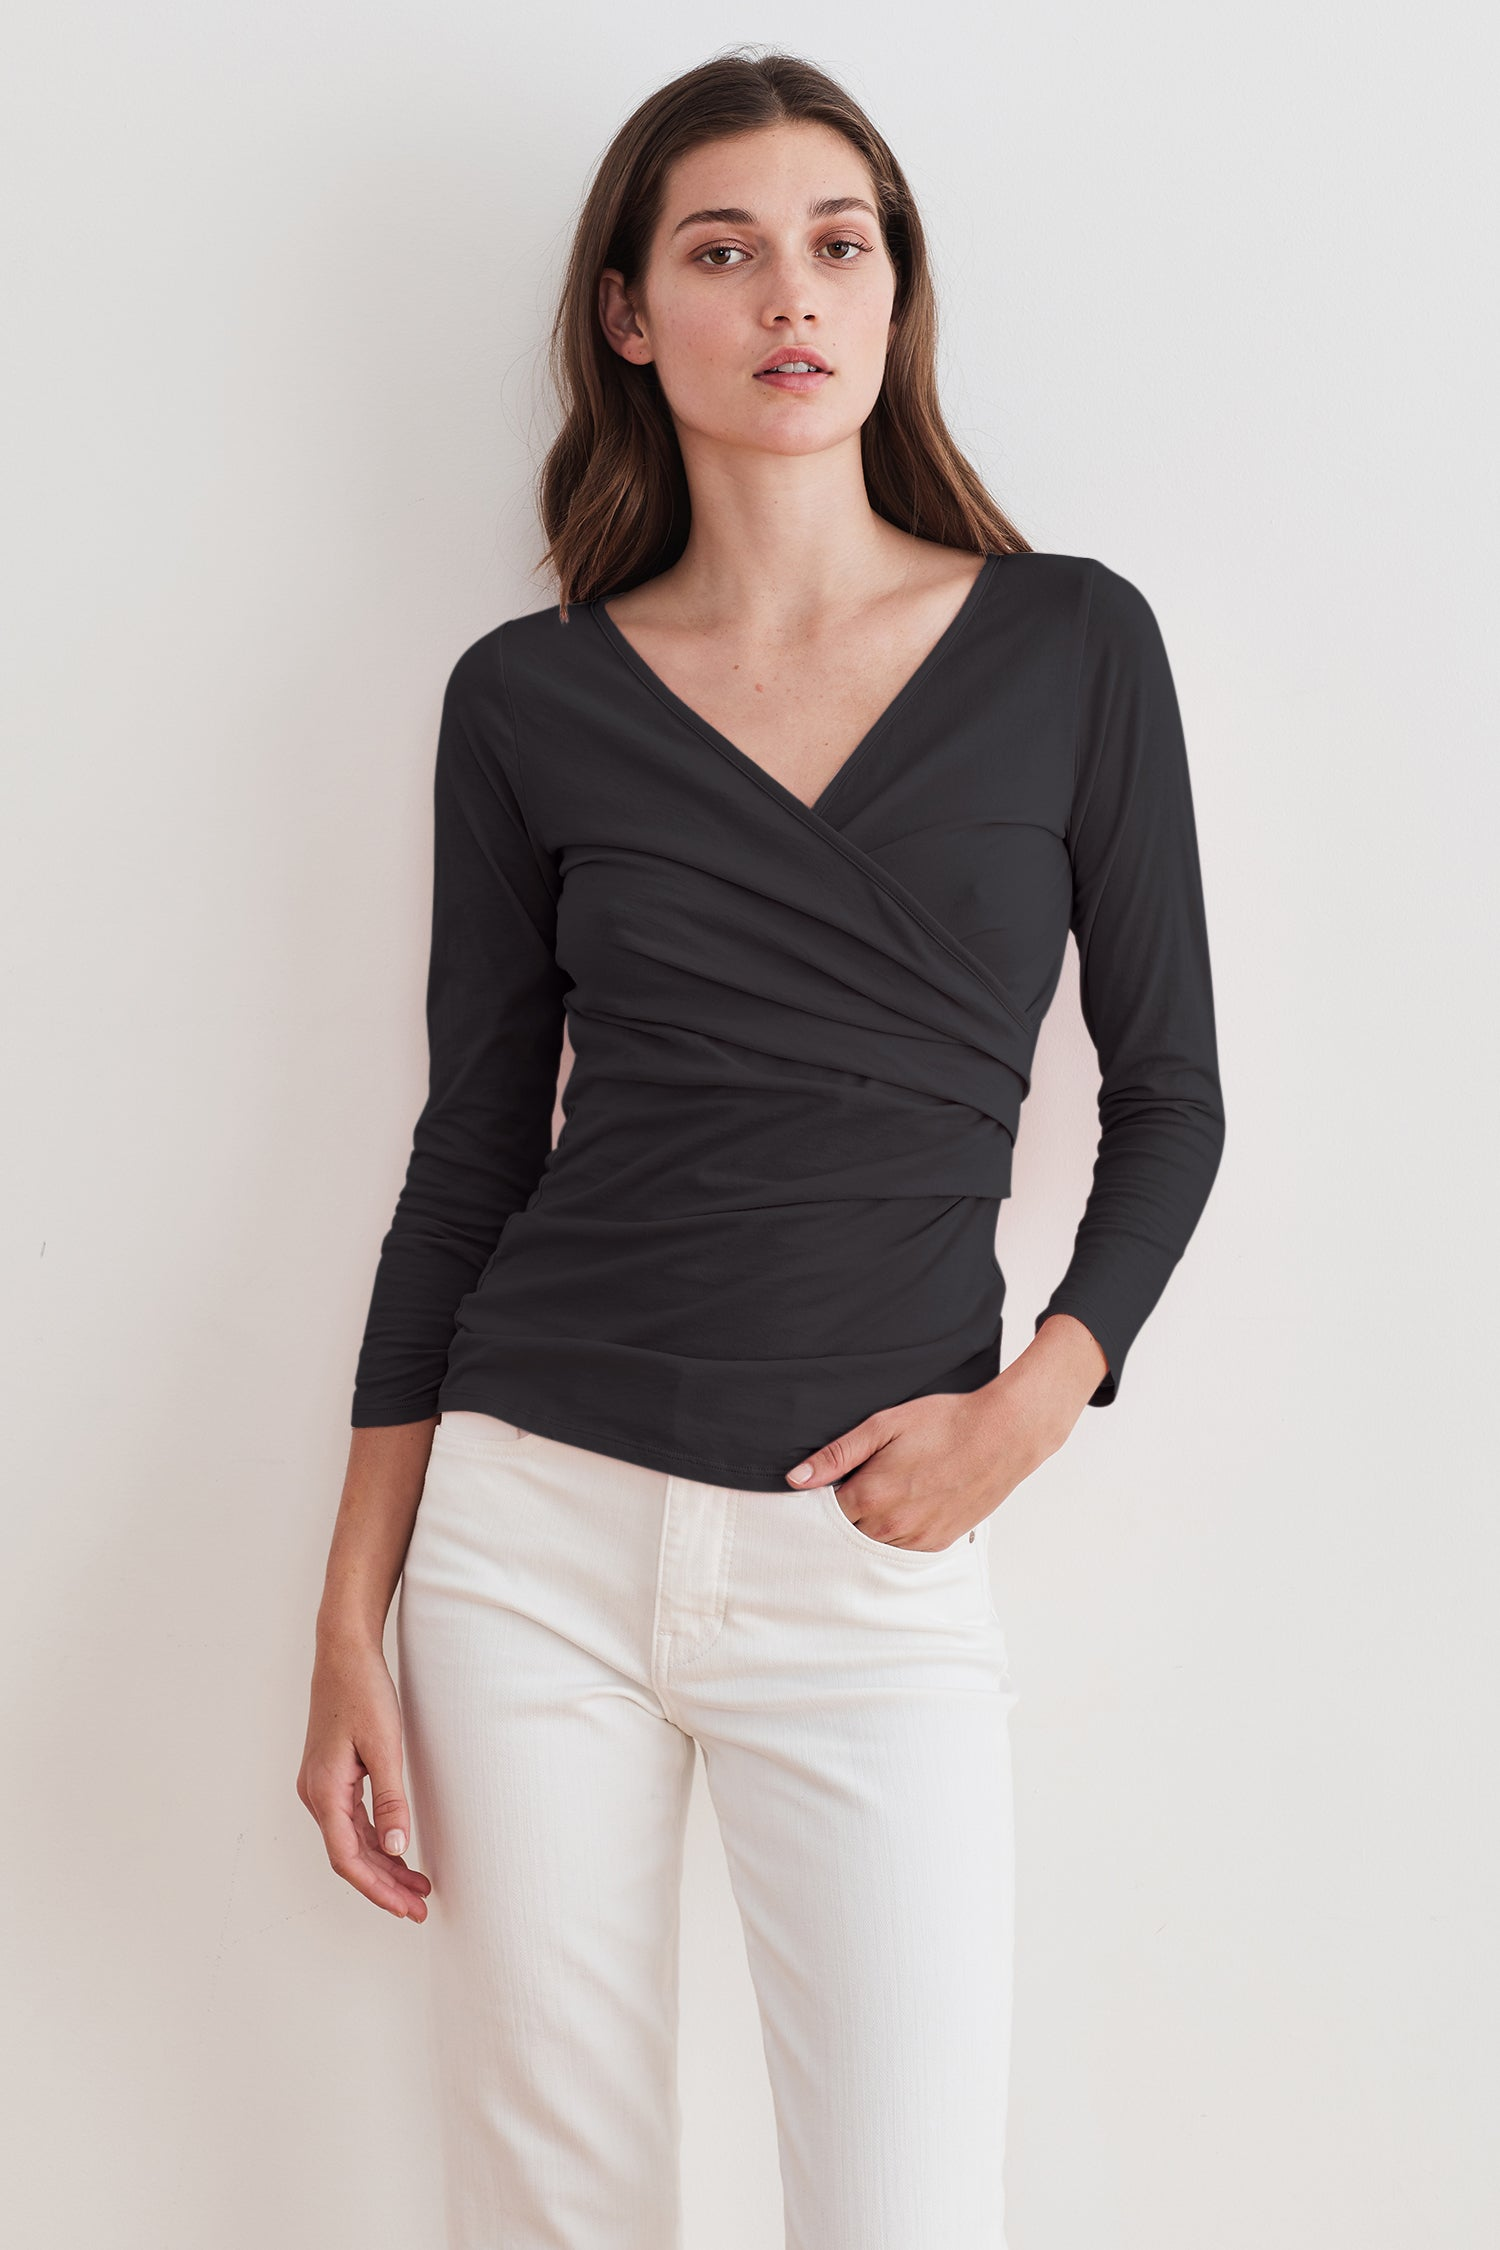 ROSA GAUZY WHISPER TOP IN BLACK